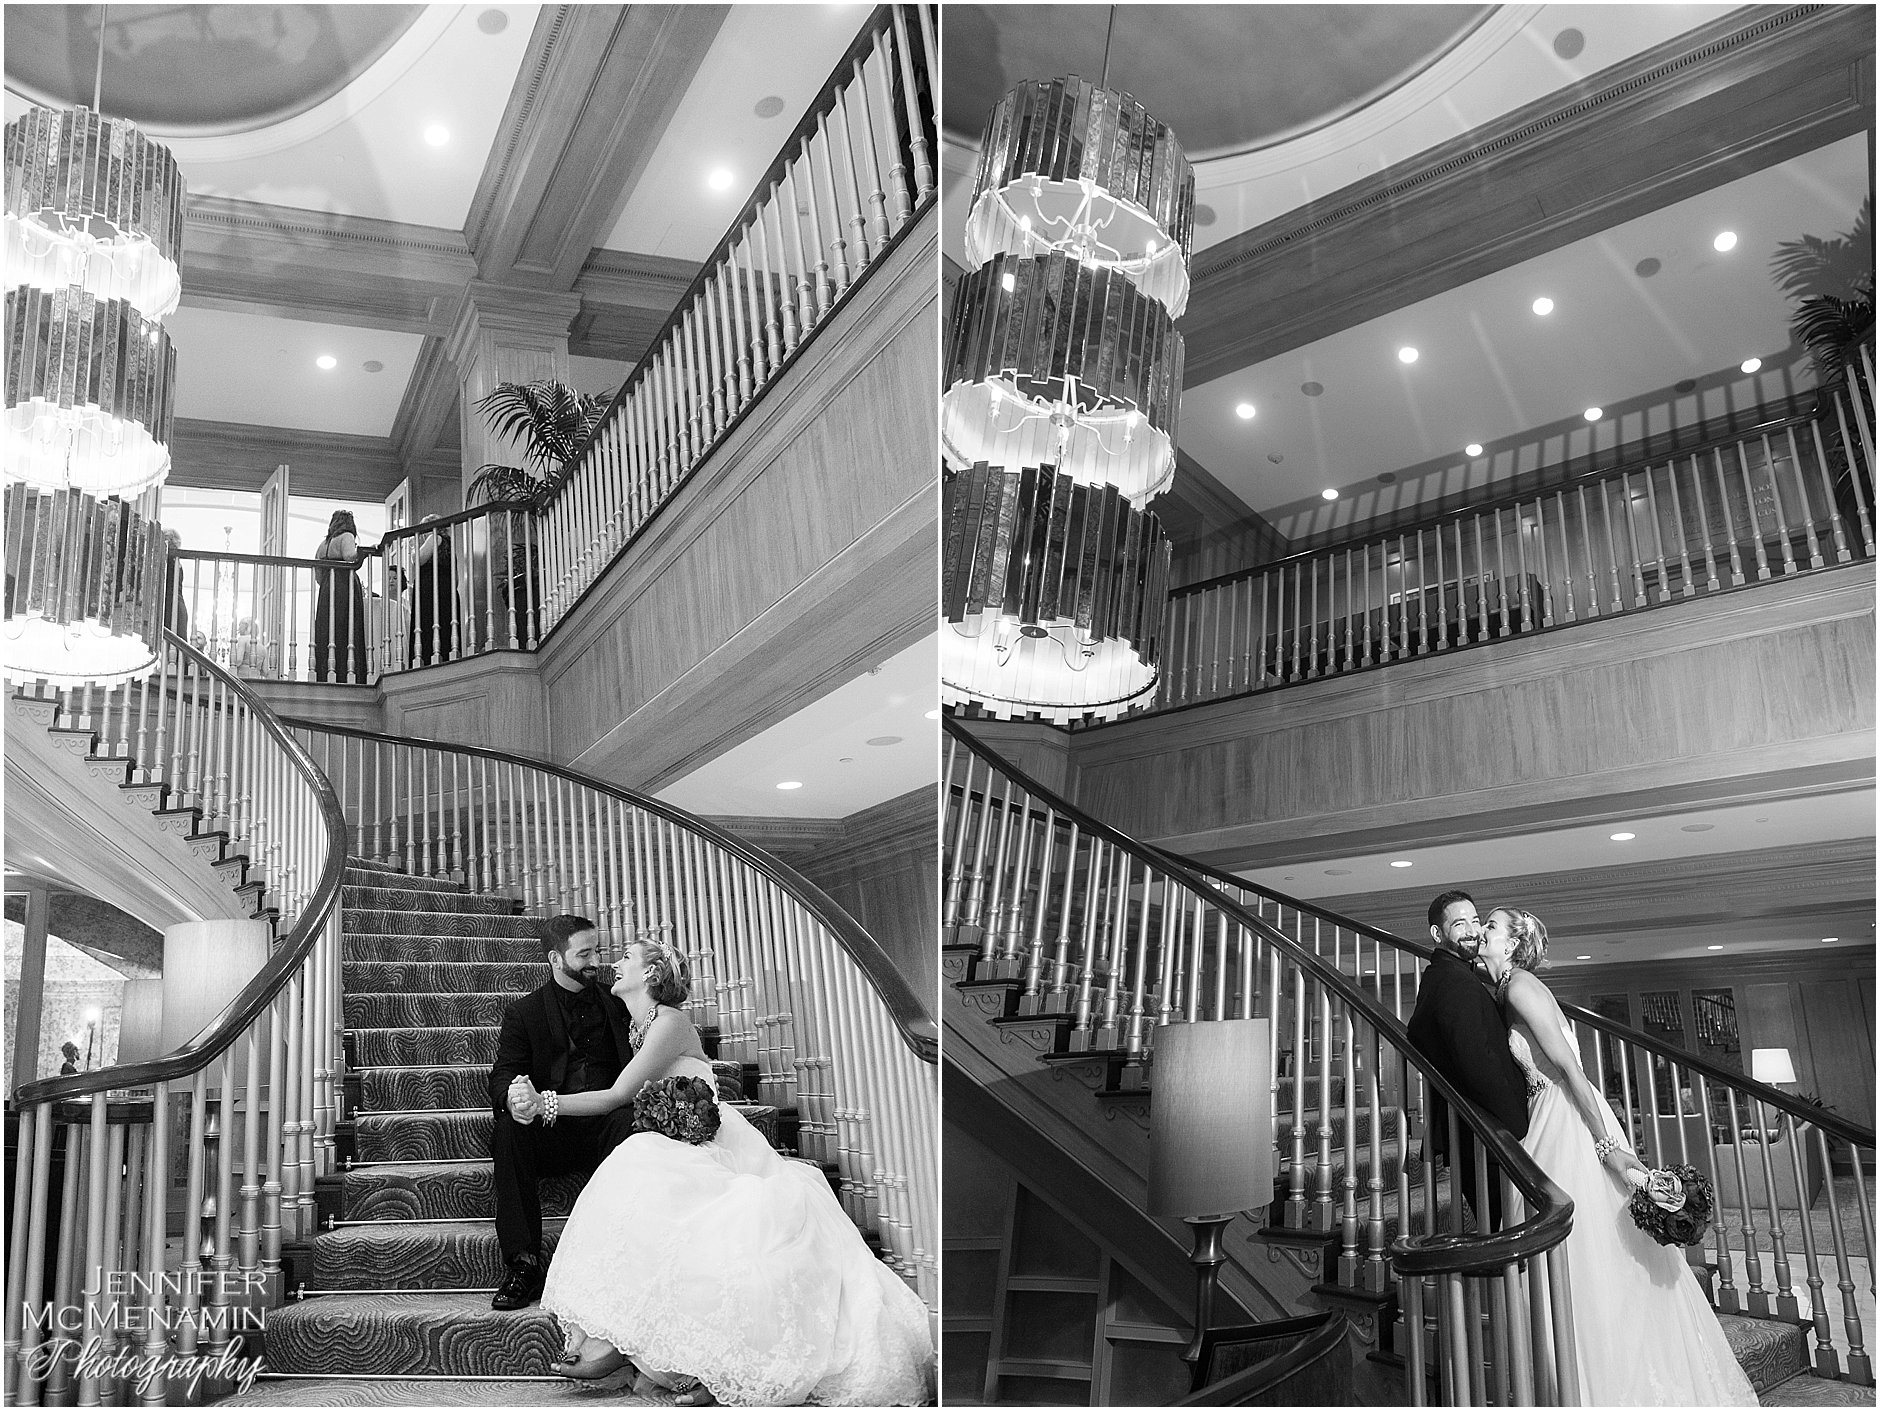 043-MorrisPustilnik_02113bw-0432_Jennifer-McMenamin-Photography-Royal-Sonesta-Harbor-Court-Hotel-wedding-Baltimore-wedding-photographer